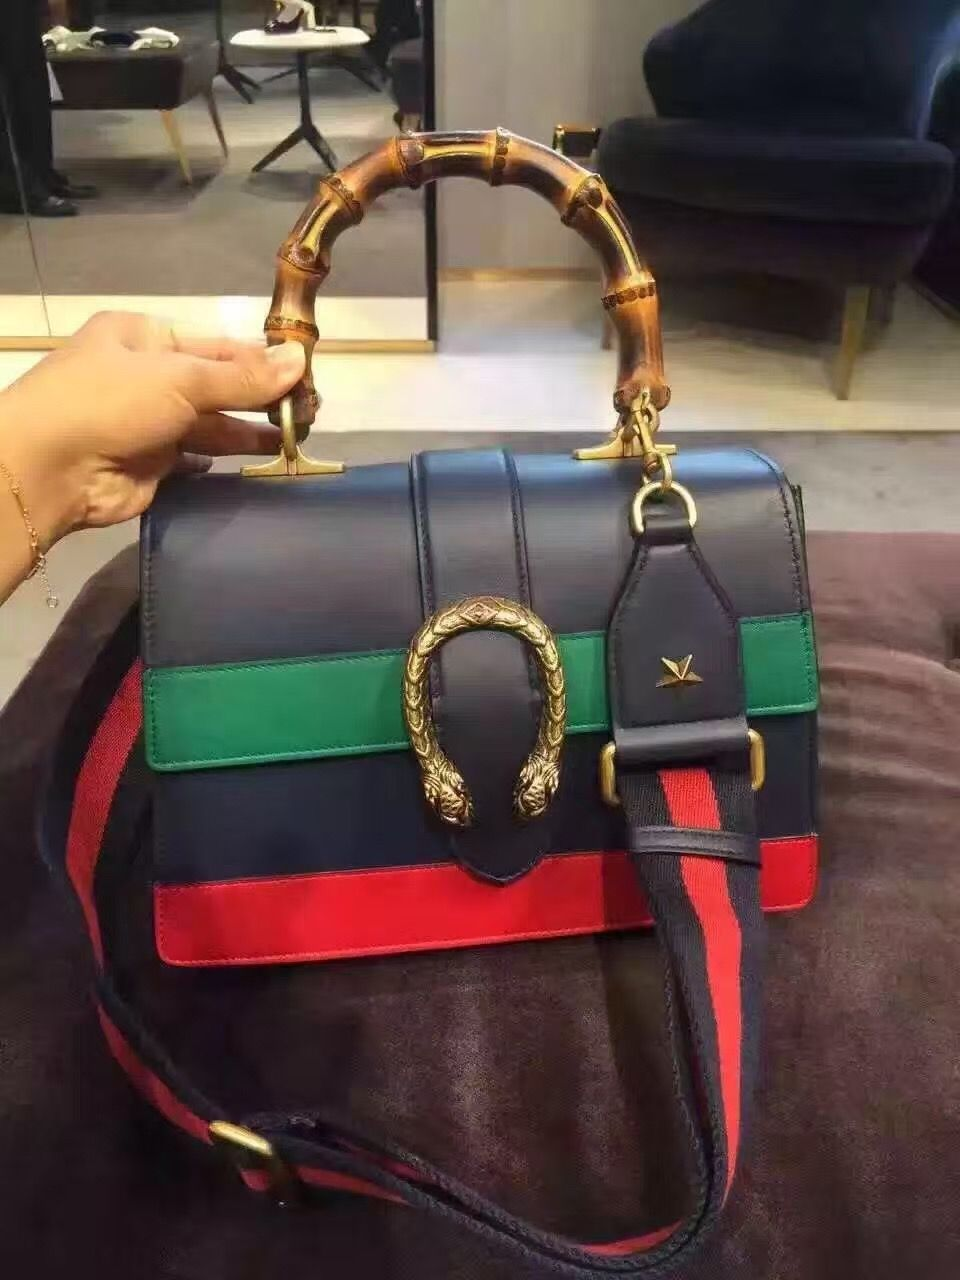 3a2e48dad4c Gucci Dionysus Multicolor Leather Top Handle Bag 421999 Discount Price  www.lamodabags.com  bamboo  guccibamboo  guccihandlebag  guccibag